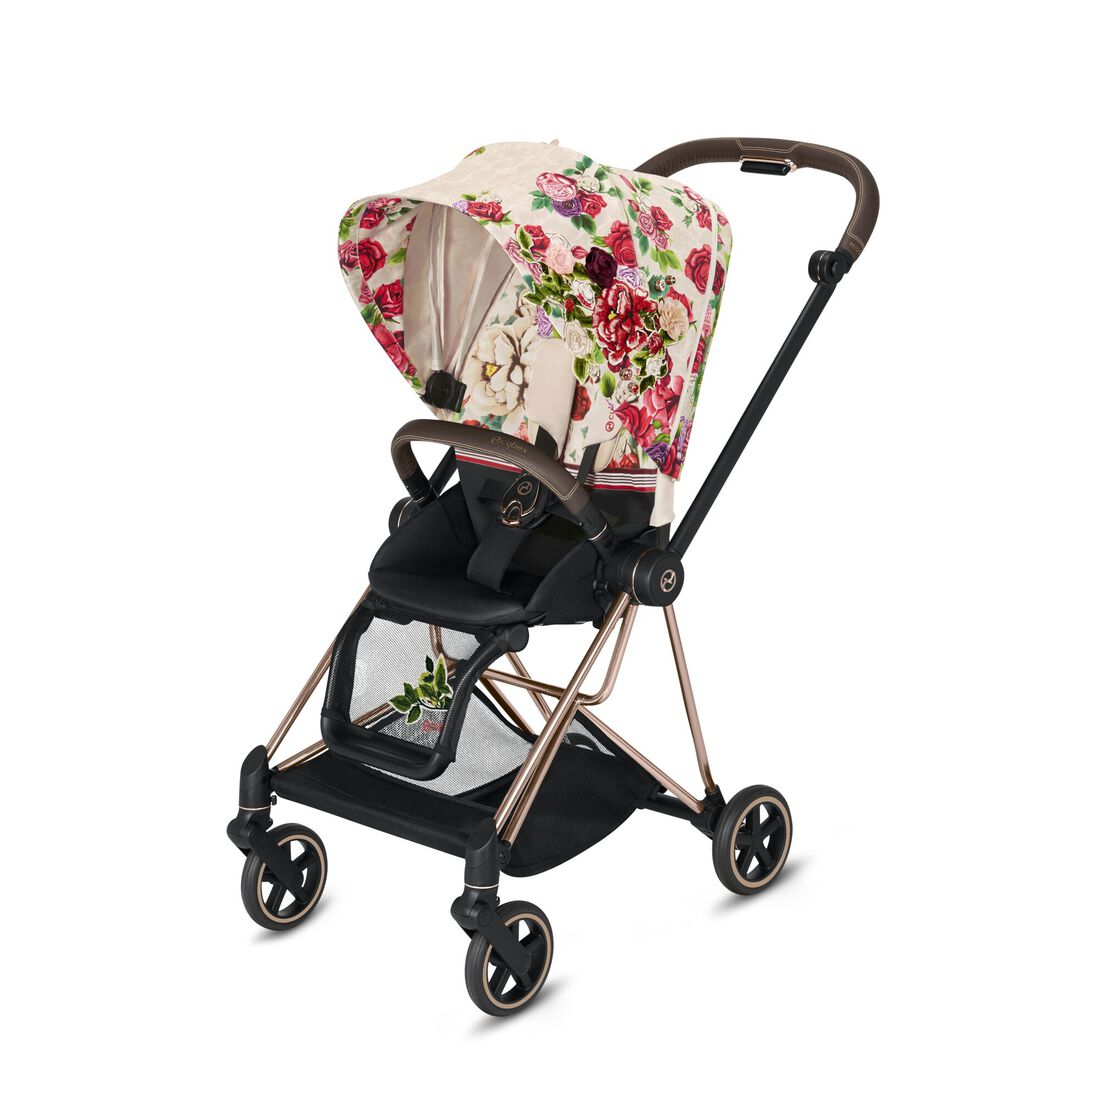 CYBEX Mios Seat Pack - Spring Blossom Light in Spring Blossom Light large image number 2